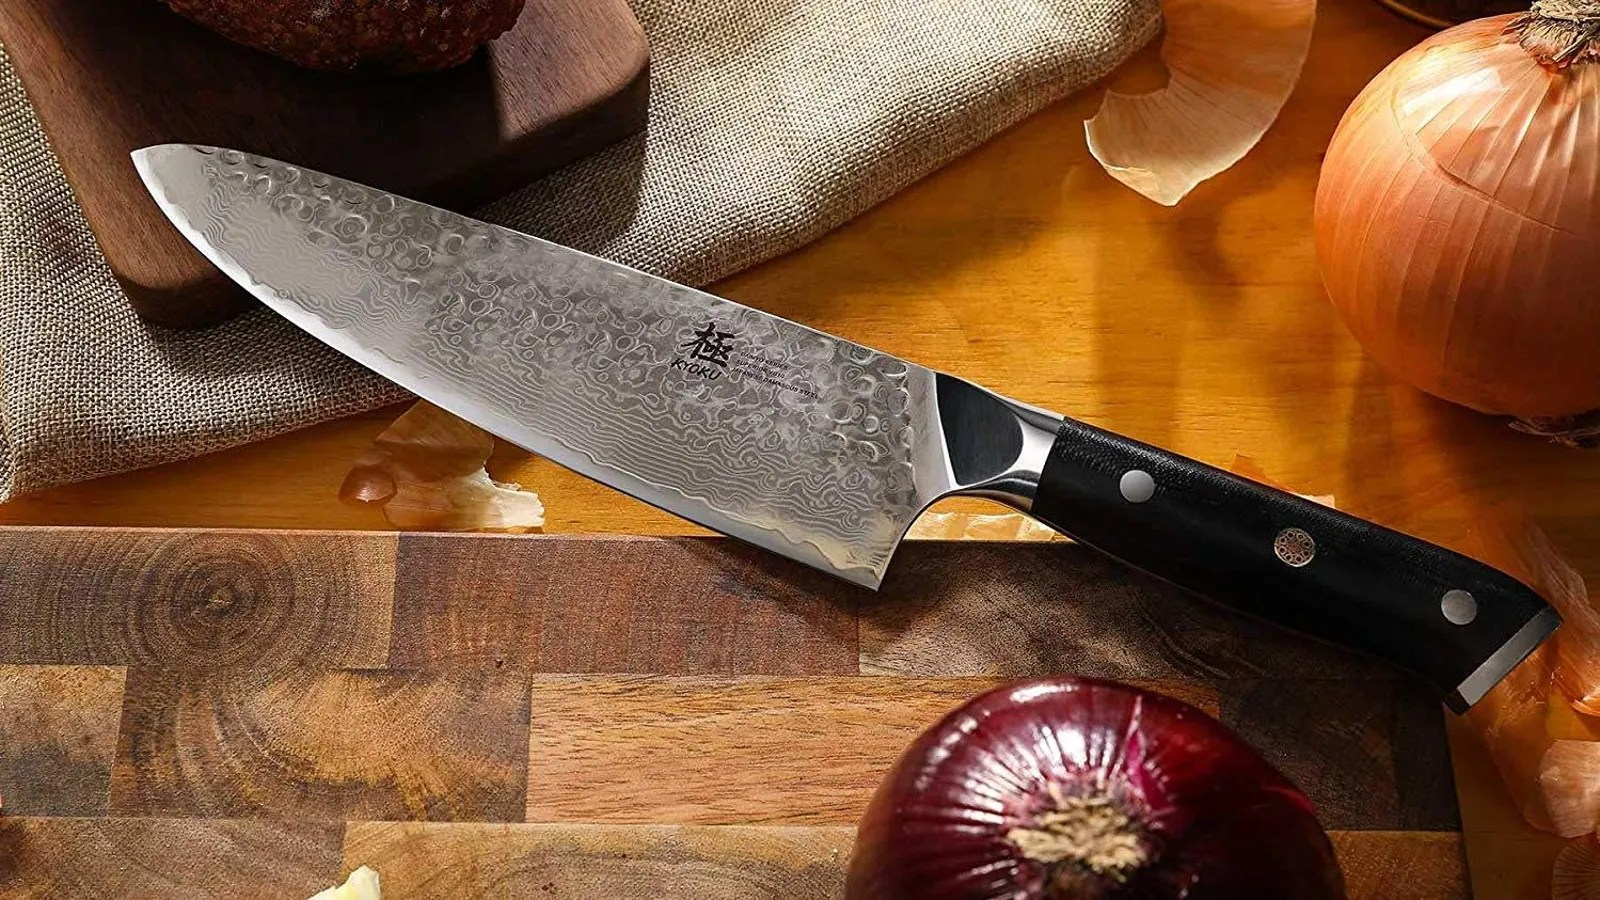 Knife Media Kyoku Daimyo Series Chef 39s Knife Review